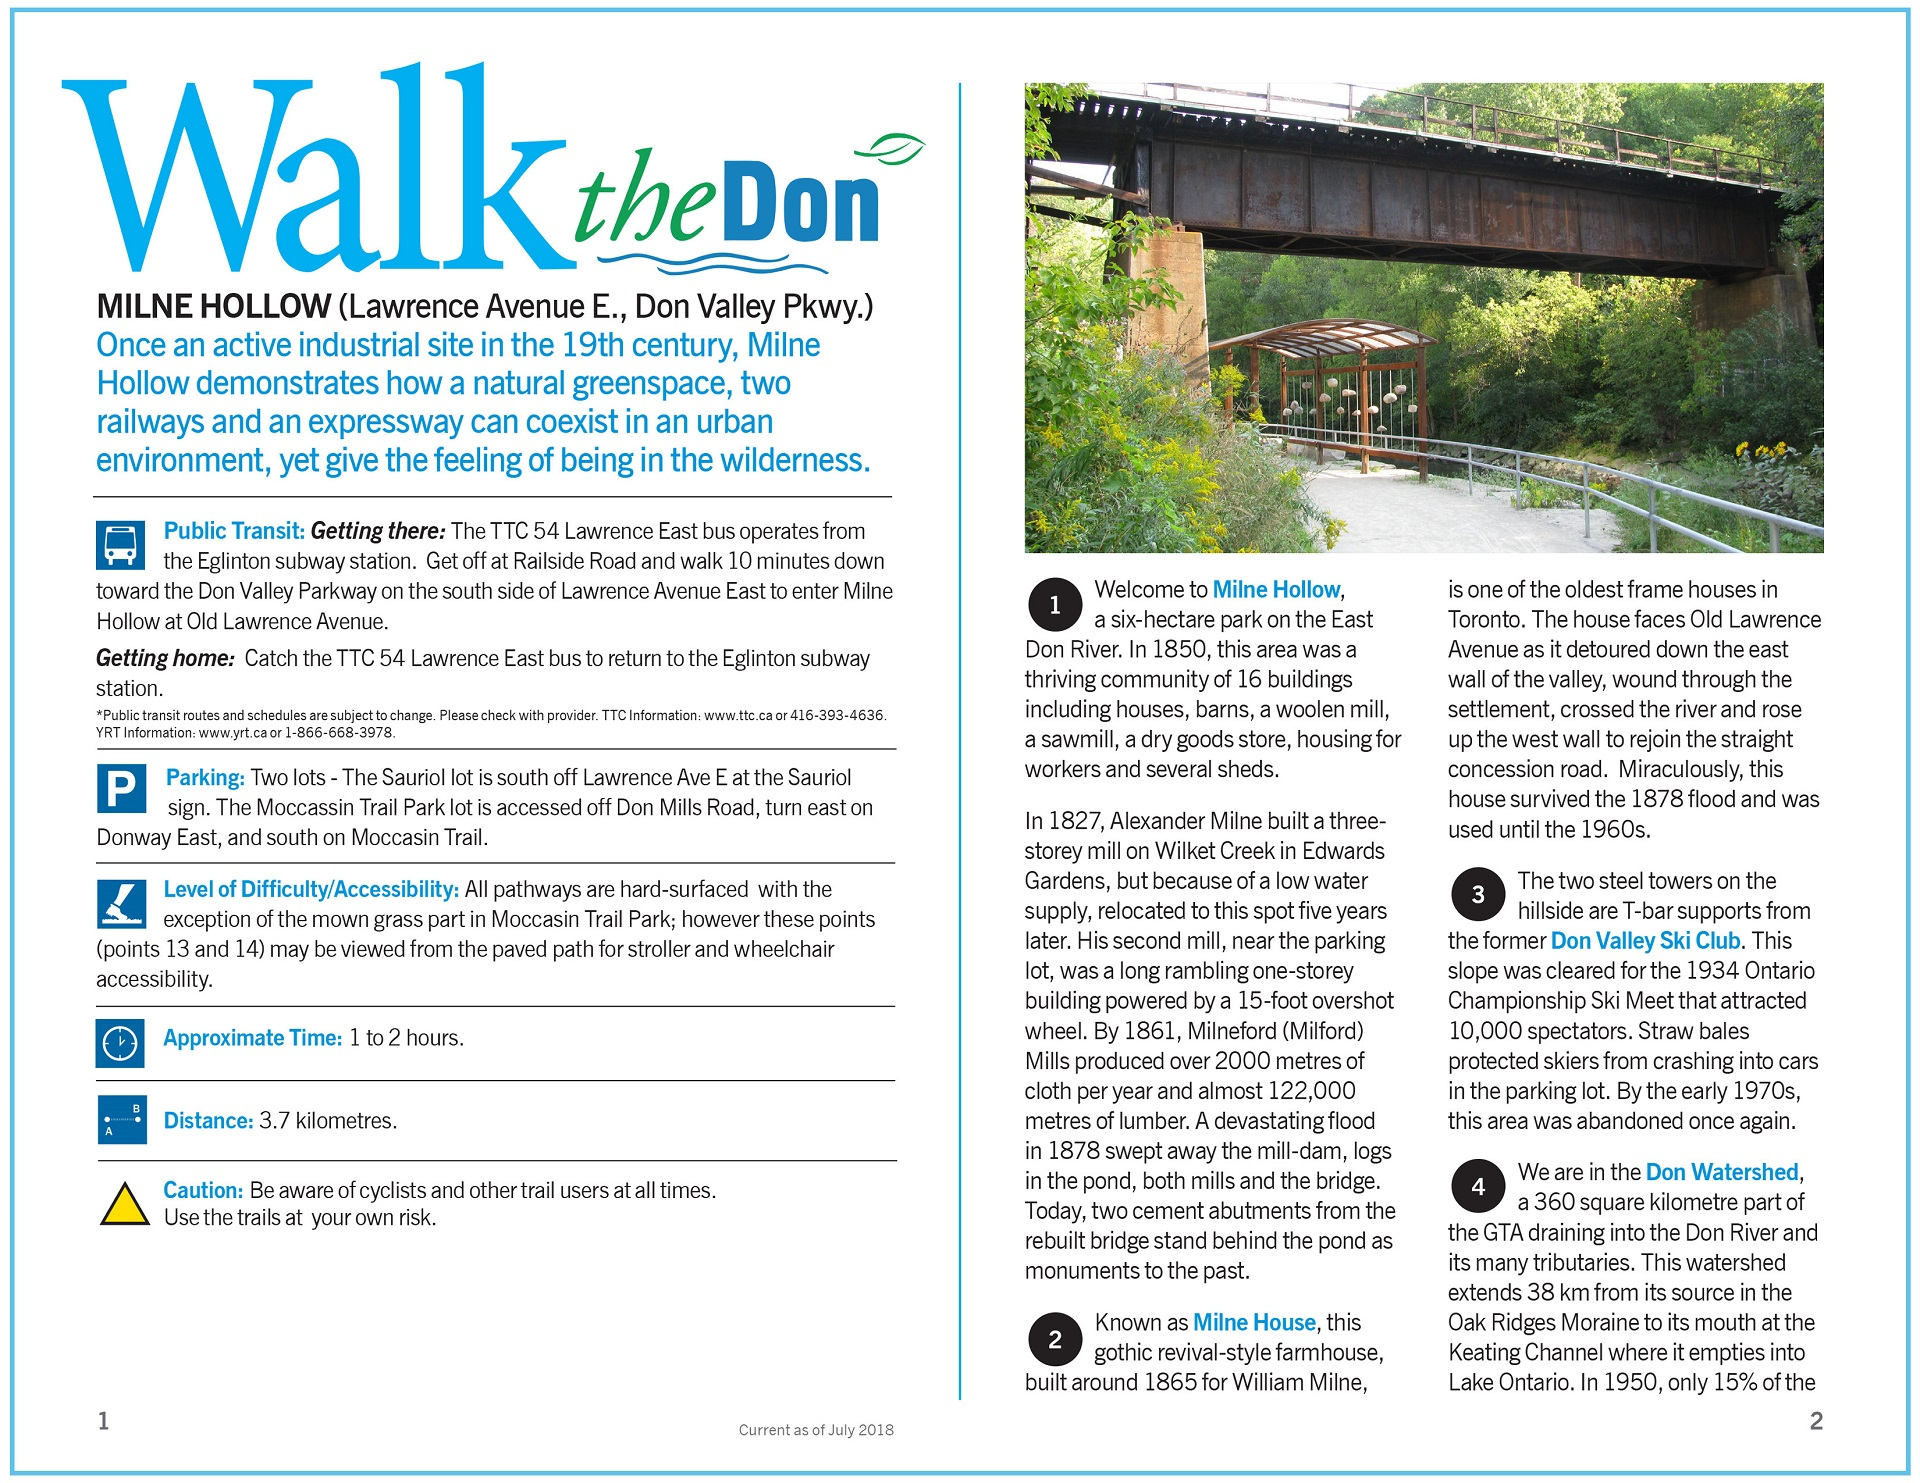 Walk the Don - Milne Hollow Trail Guide